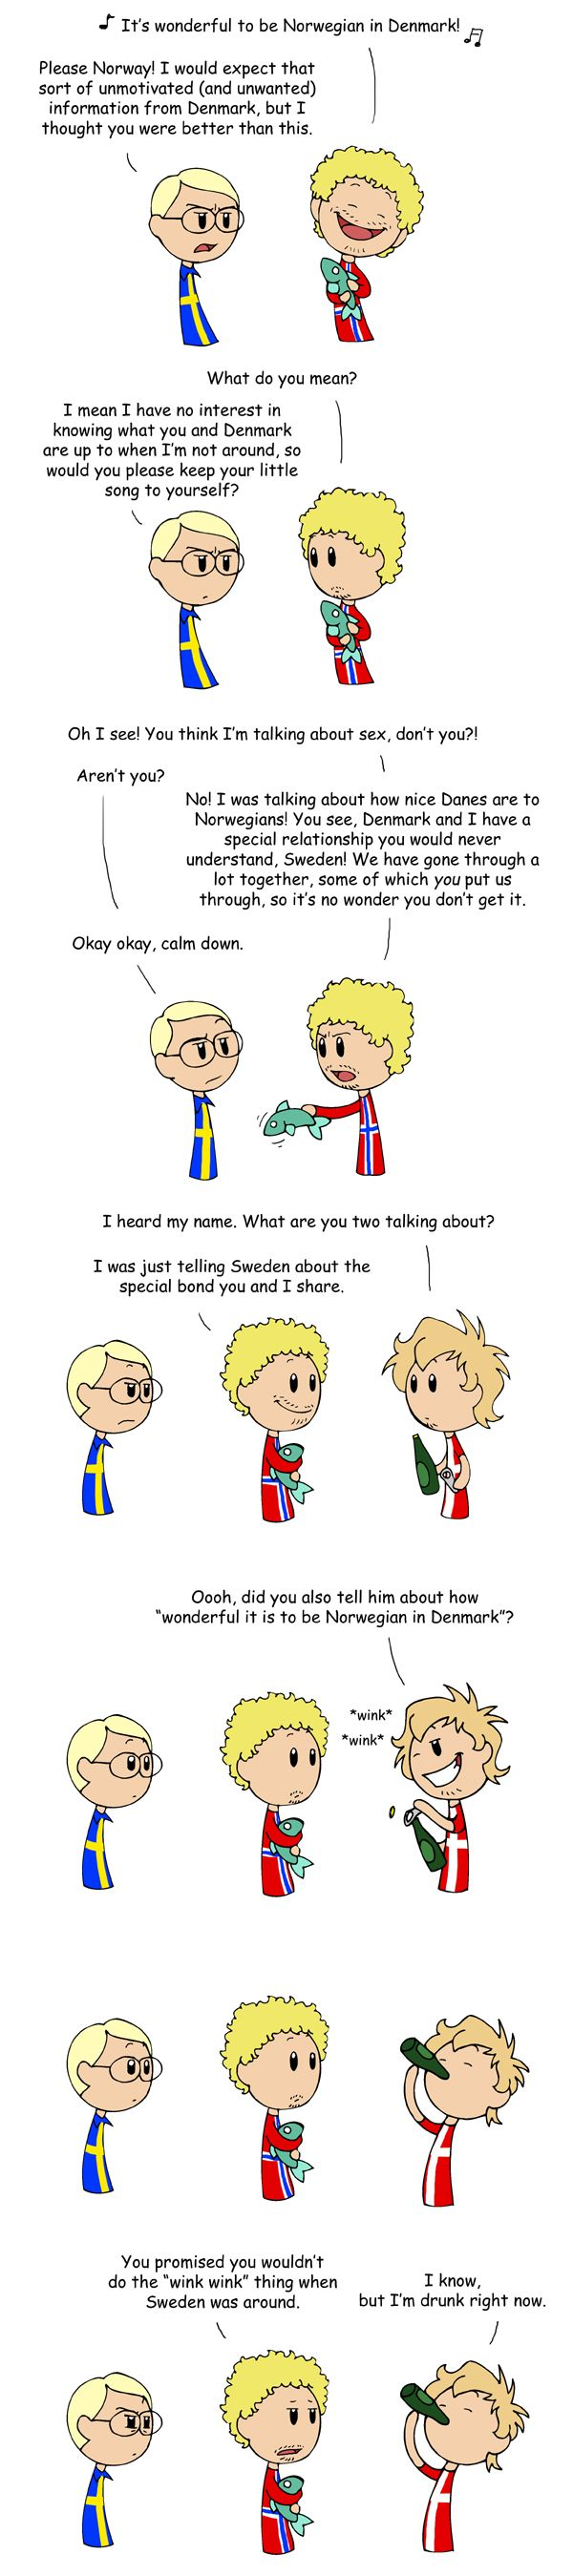 Norway in Denmark by humon on deviantART: it's also a airline slogan but when you put it to this.....